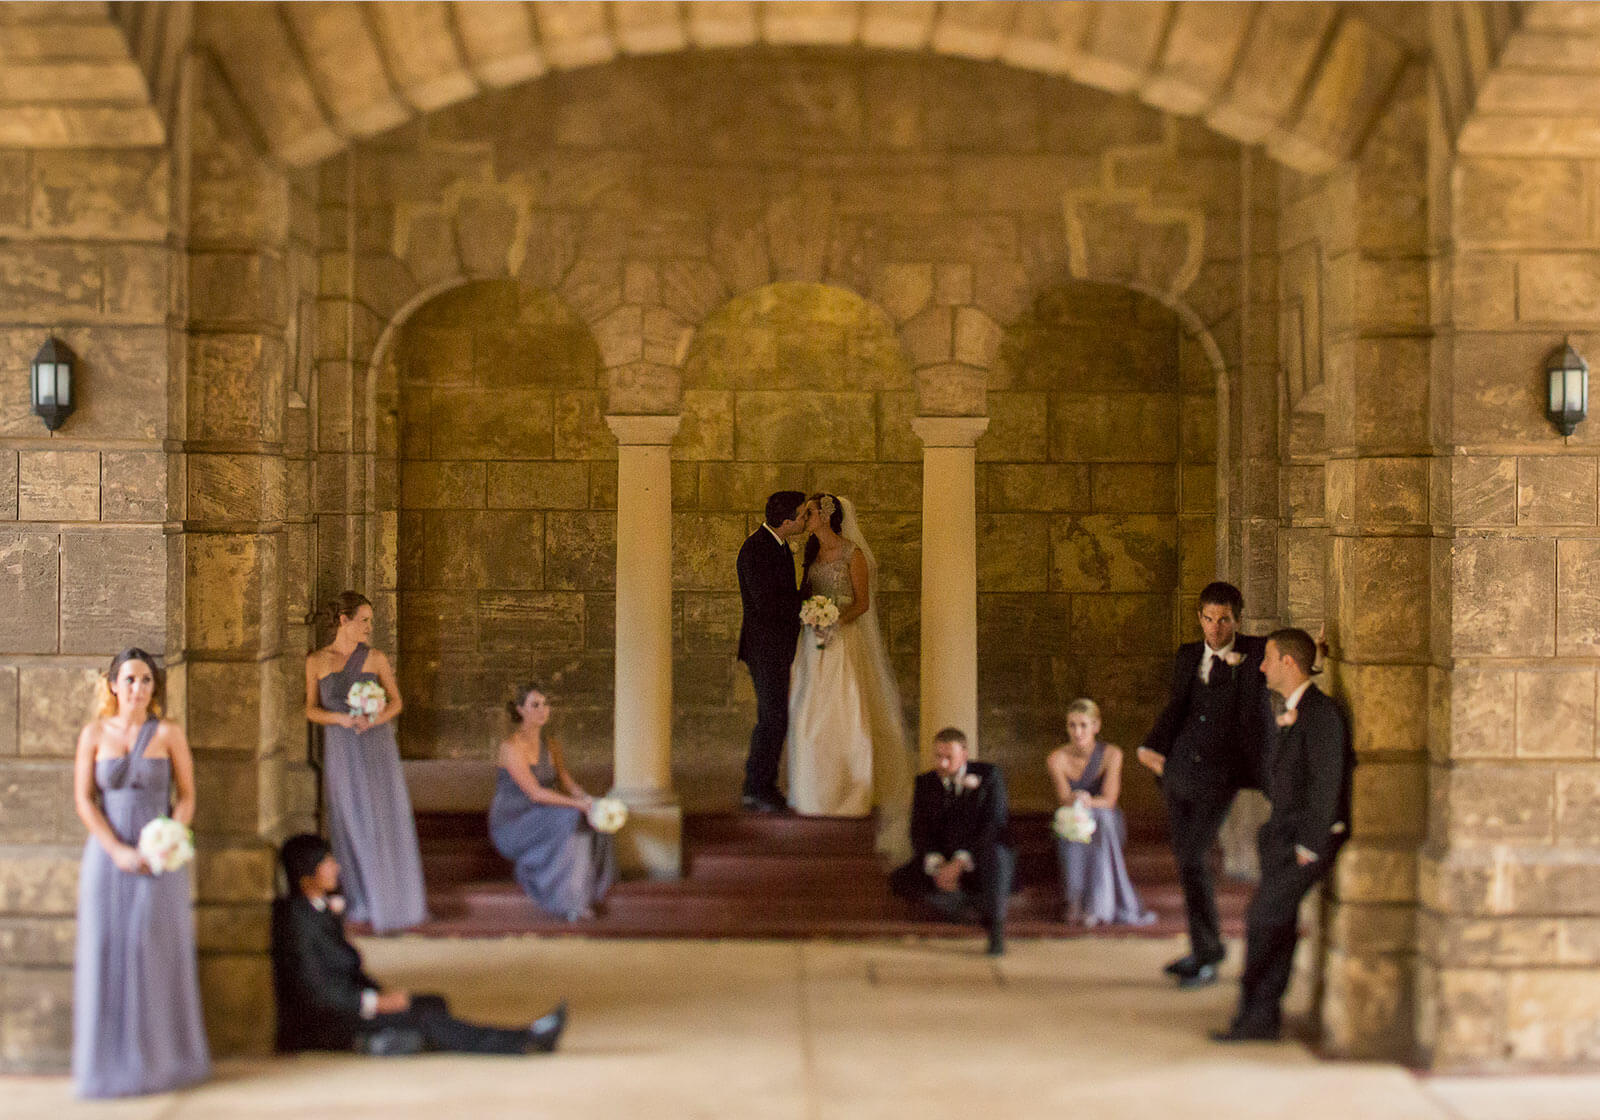 UWA, Perth Wedding Photography by Peter Adams-Shawn